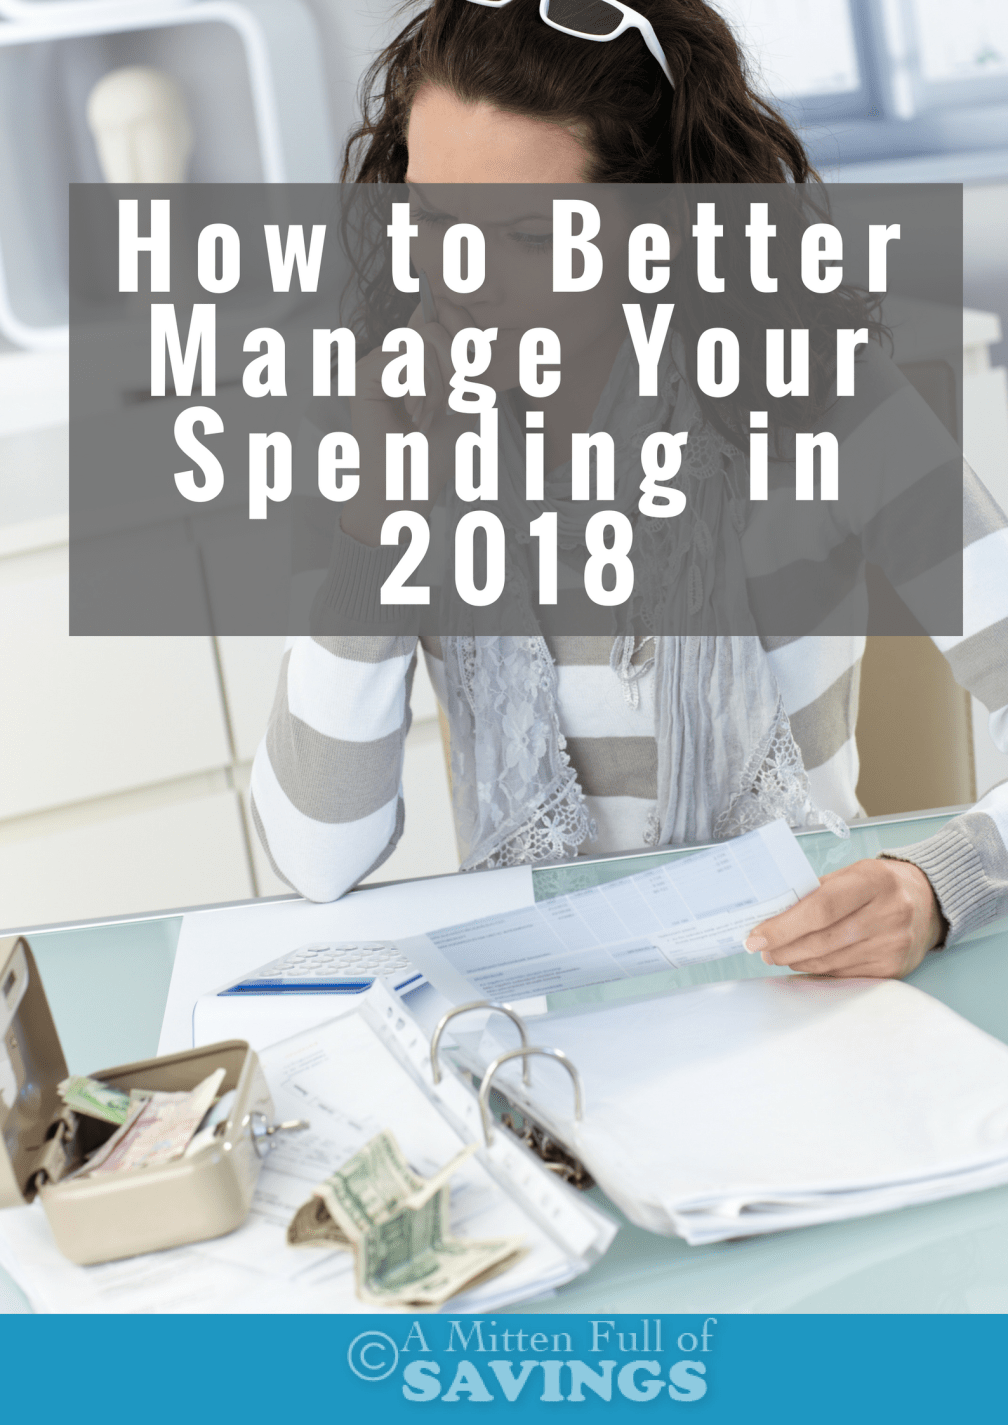 It's easy to allow your spending habits to get out of control. This year, get back on track with our budget-saving tips on how to better manage your spending in 2018.